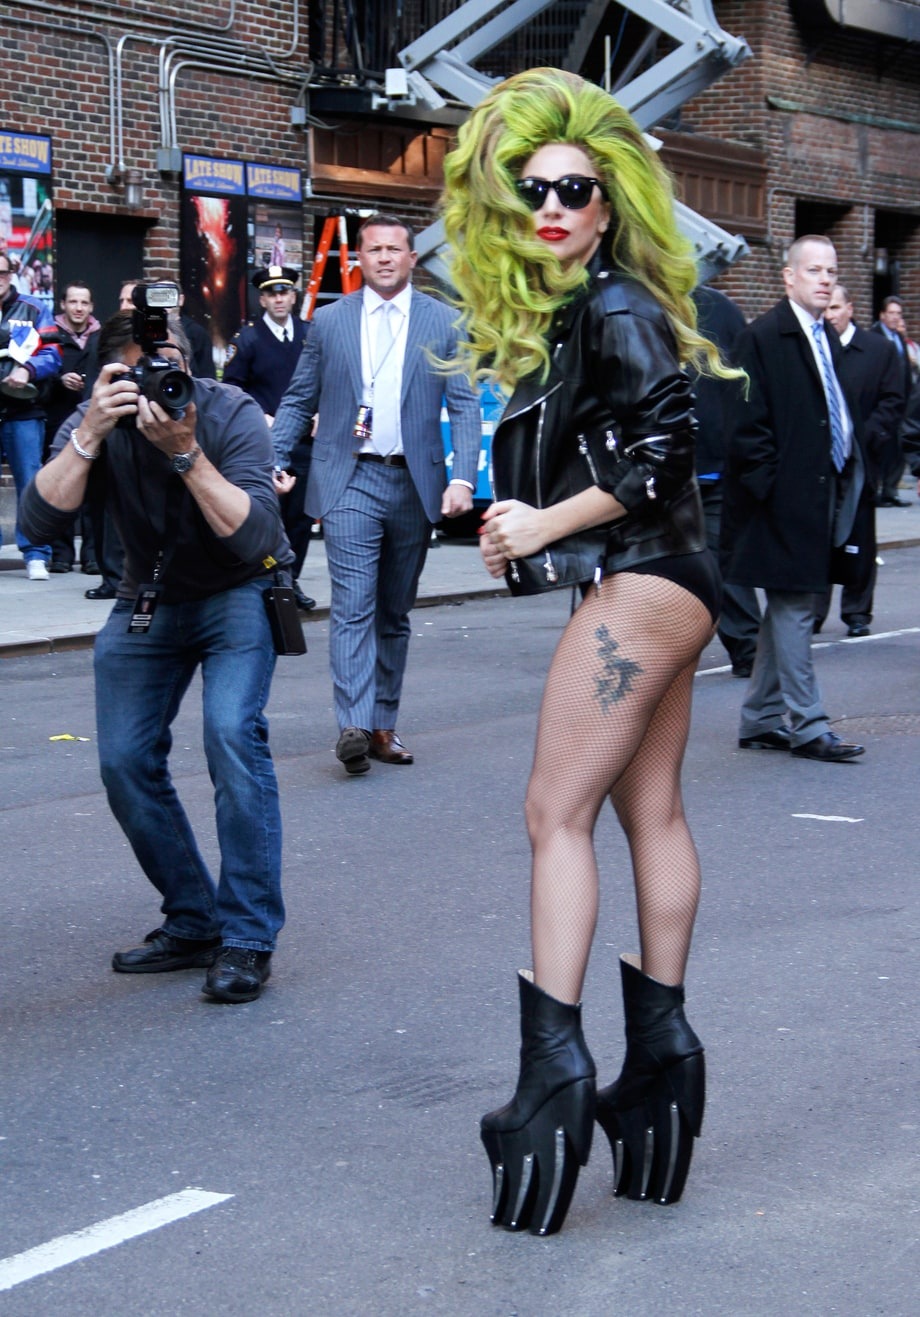 Sans Pants: A Recent History of Lady Gaga's Bottomless Resurrection